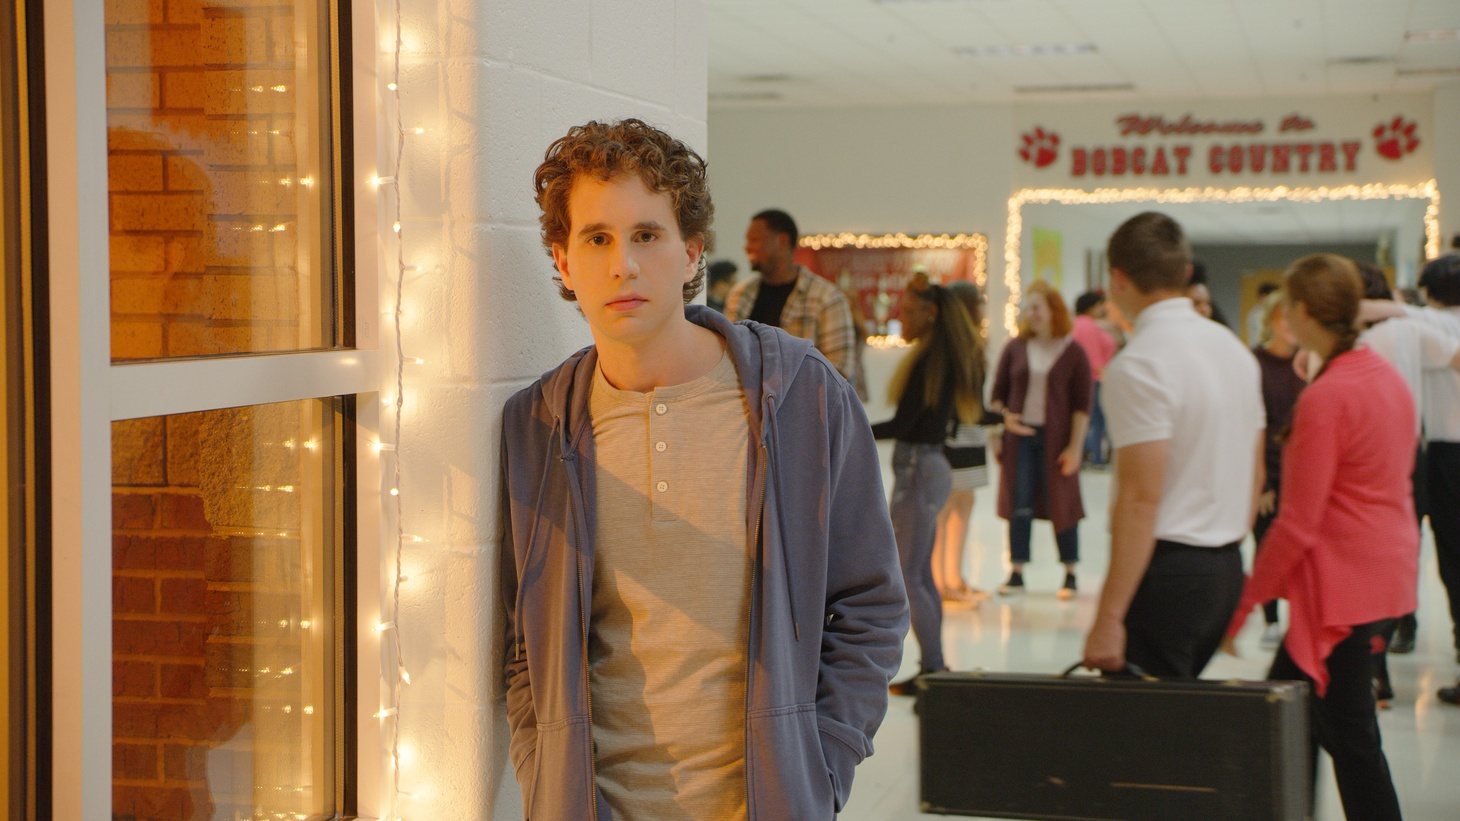 Twenty-eight-year-old actor Ben Platt's portrayal of a teenager character is getting a lot of pushback from critics.